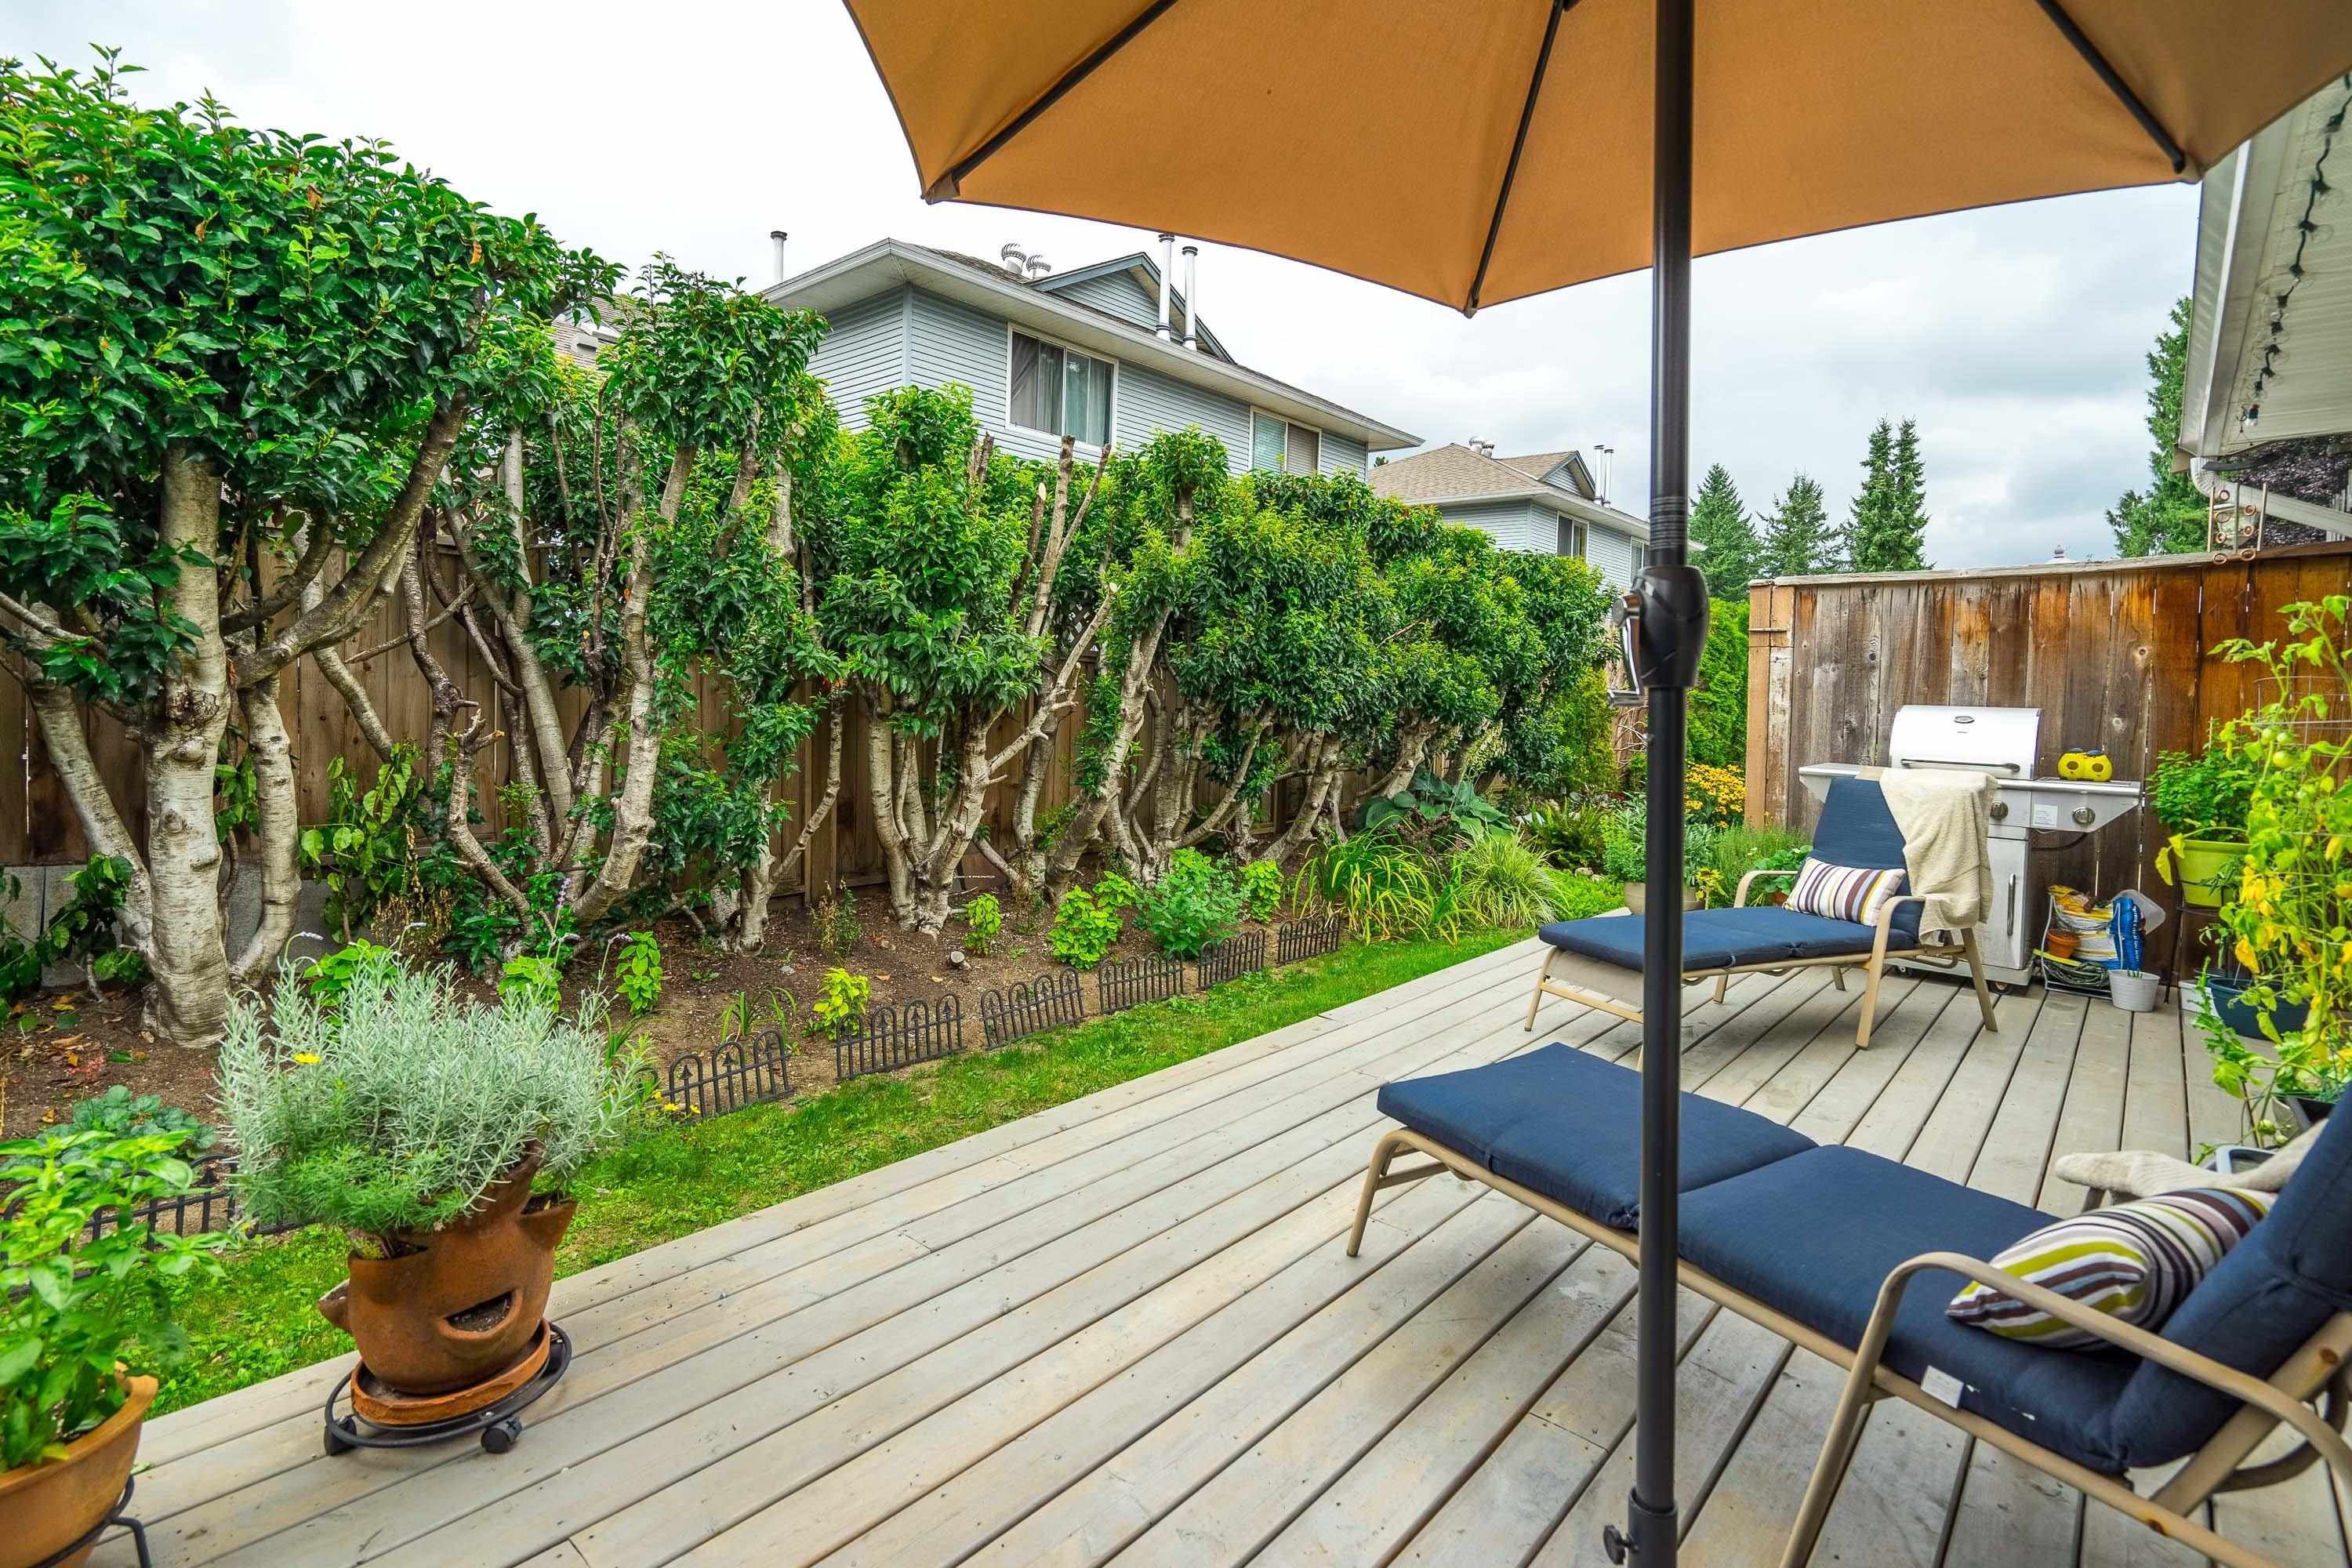 """Main Photo: 16 19270 119 Avenue in Pitt Meadows: Central Meadows Townhouse for sale in """"McMyn Estates"""" : MLS®# R2611594"""